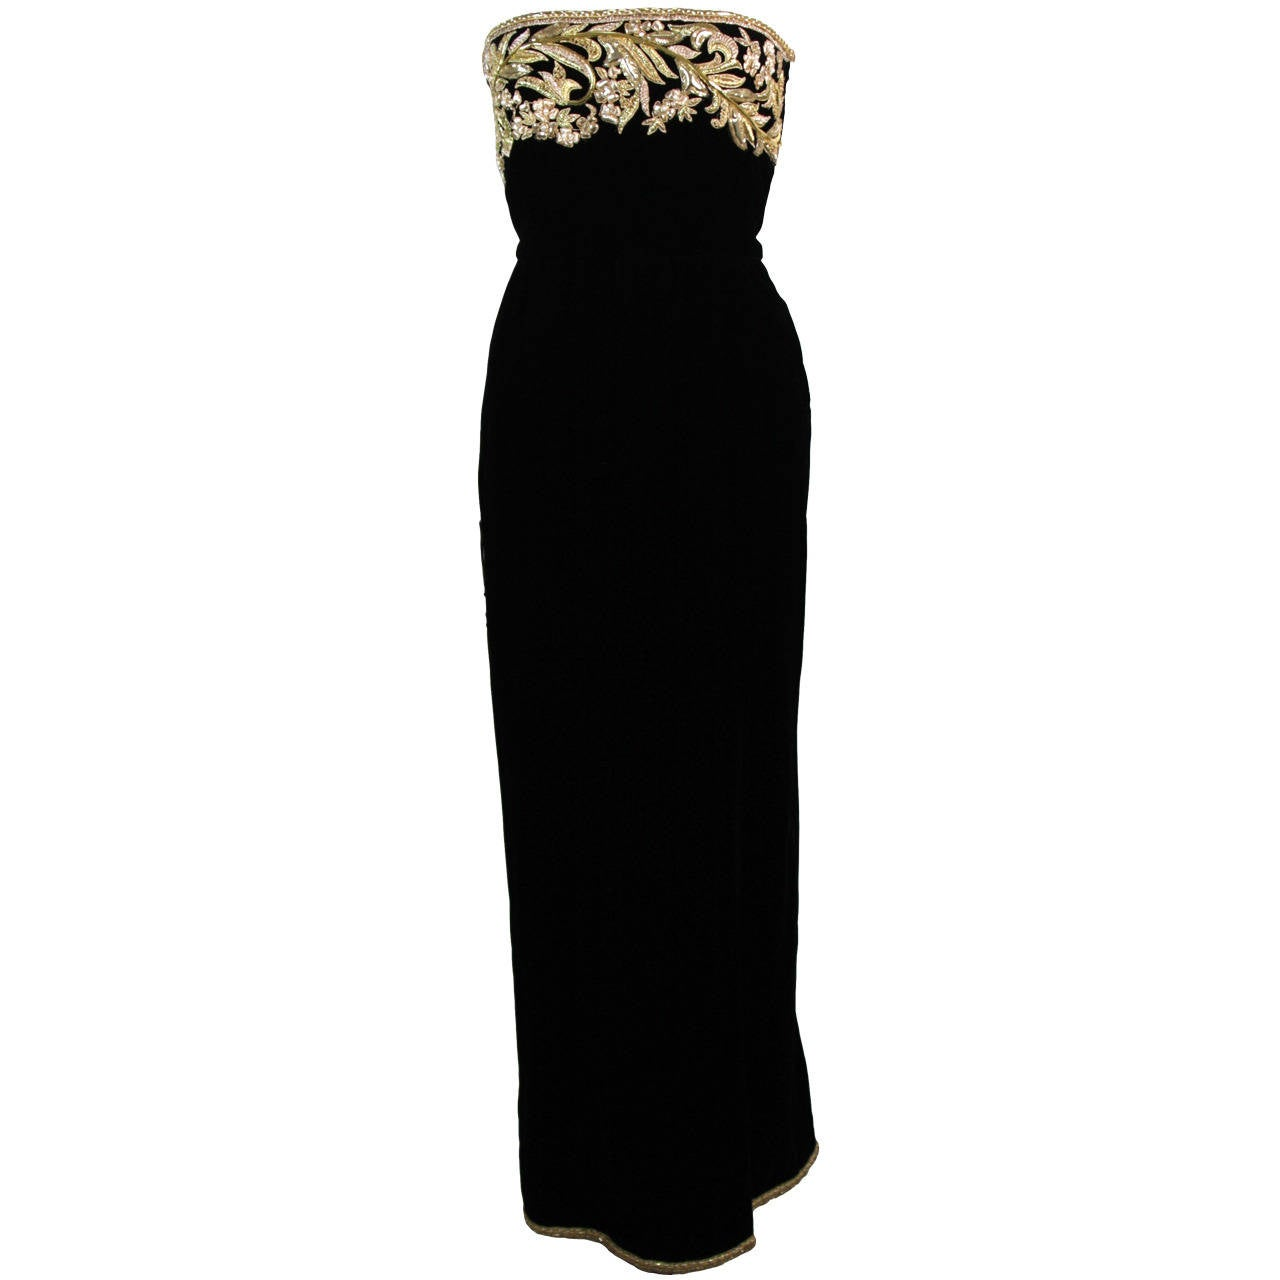 Oscar De La Renta Black Velvet Gown with Metallic Embellishments 1